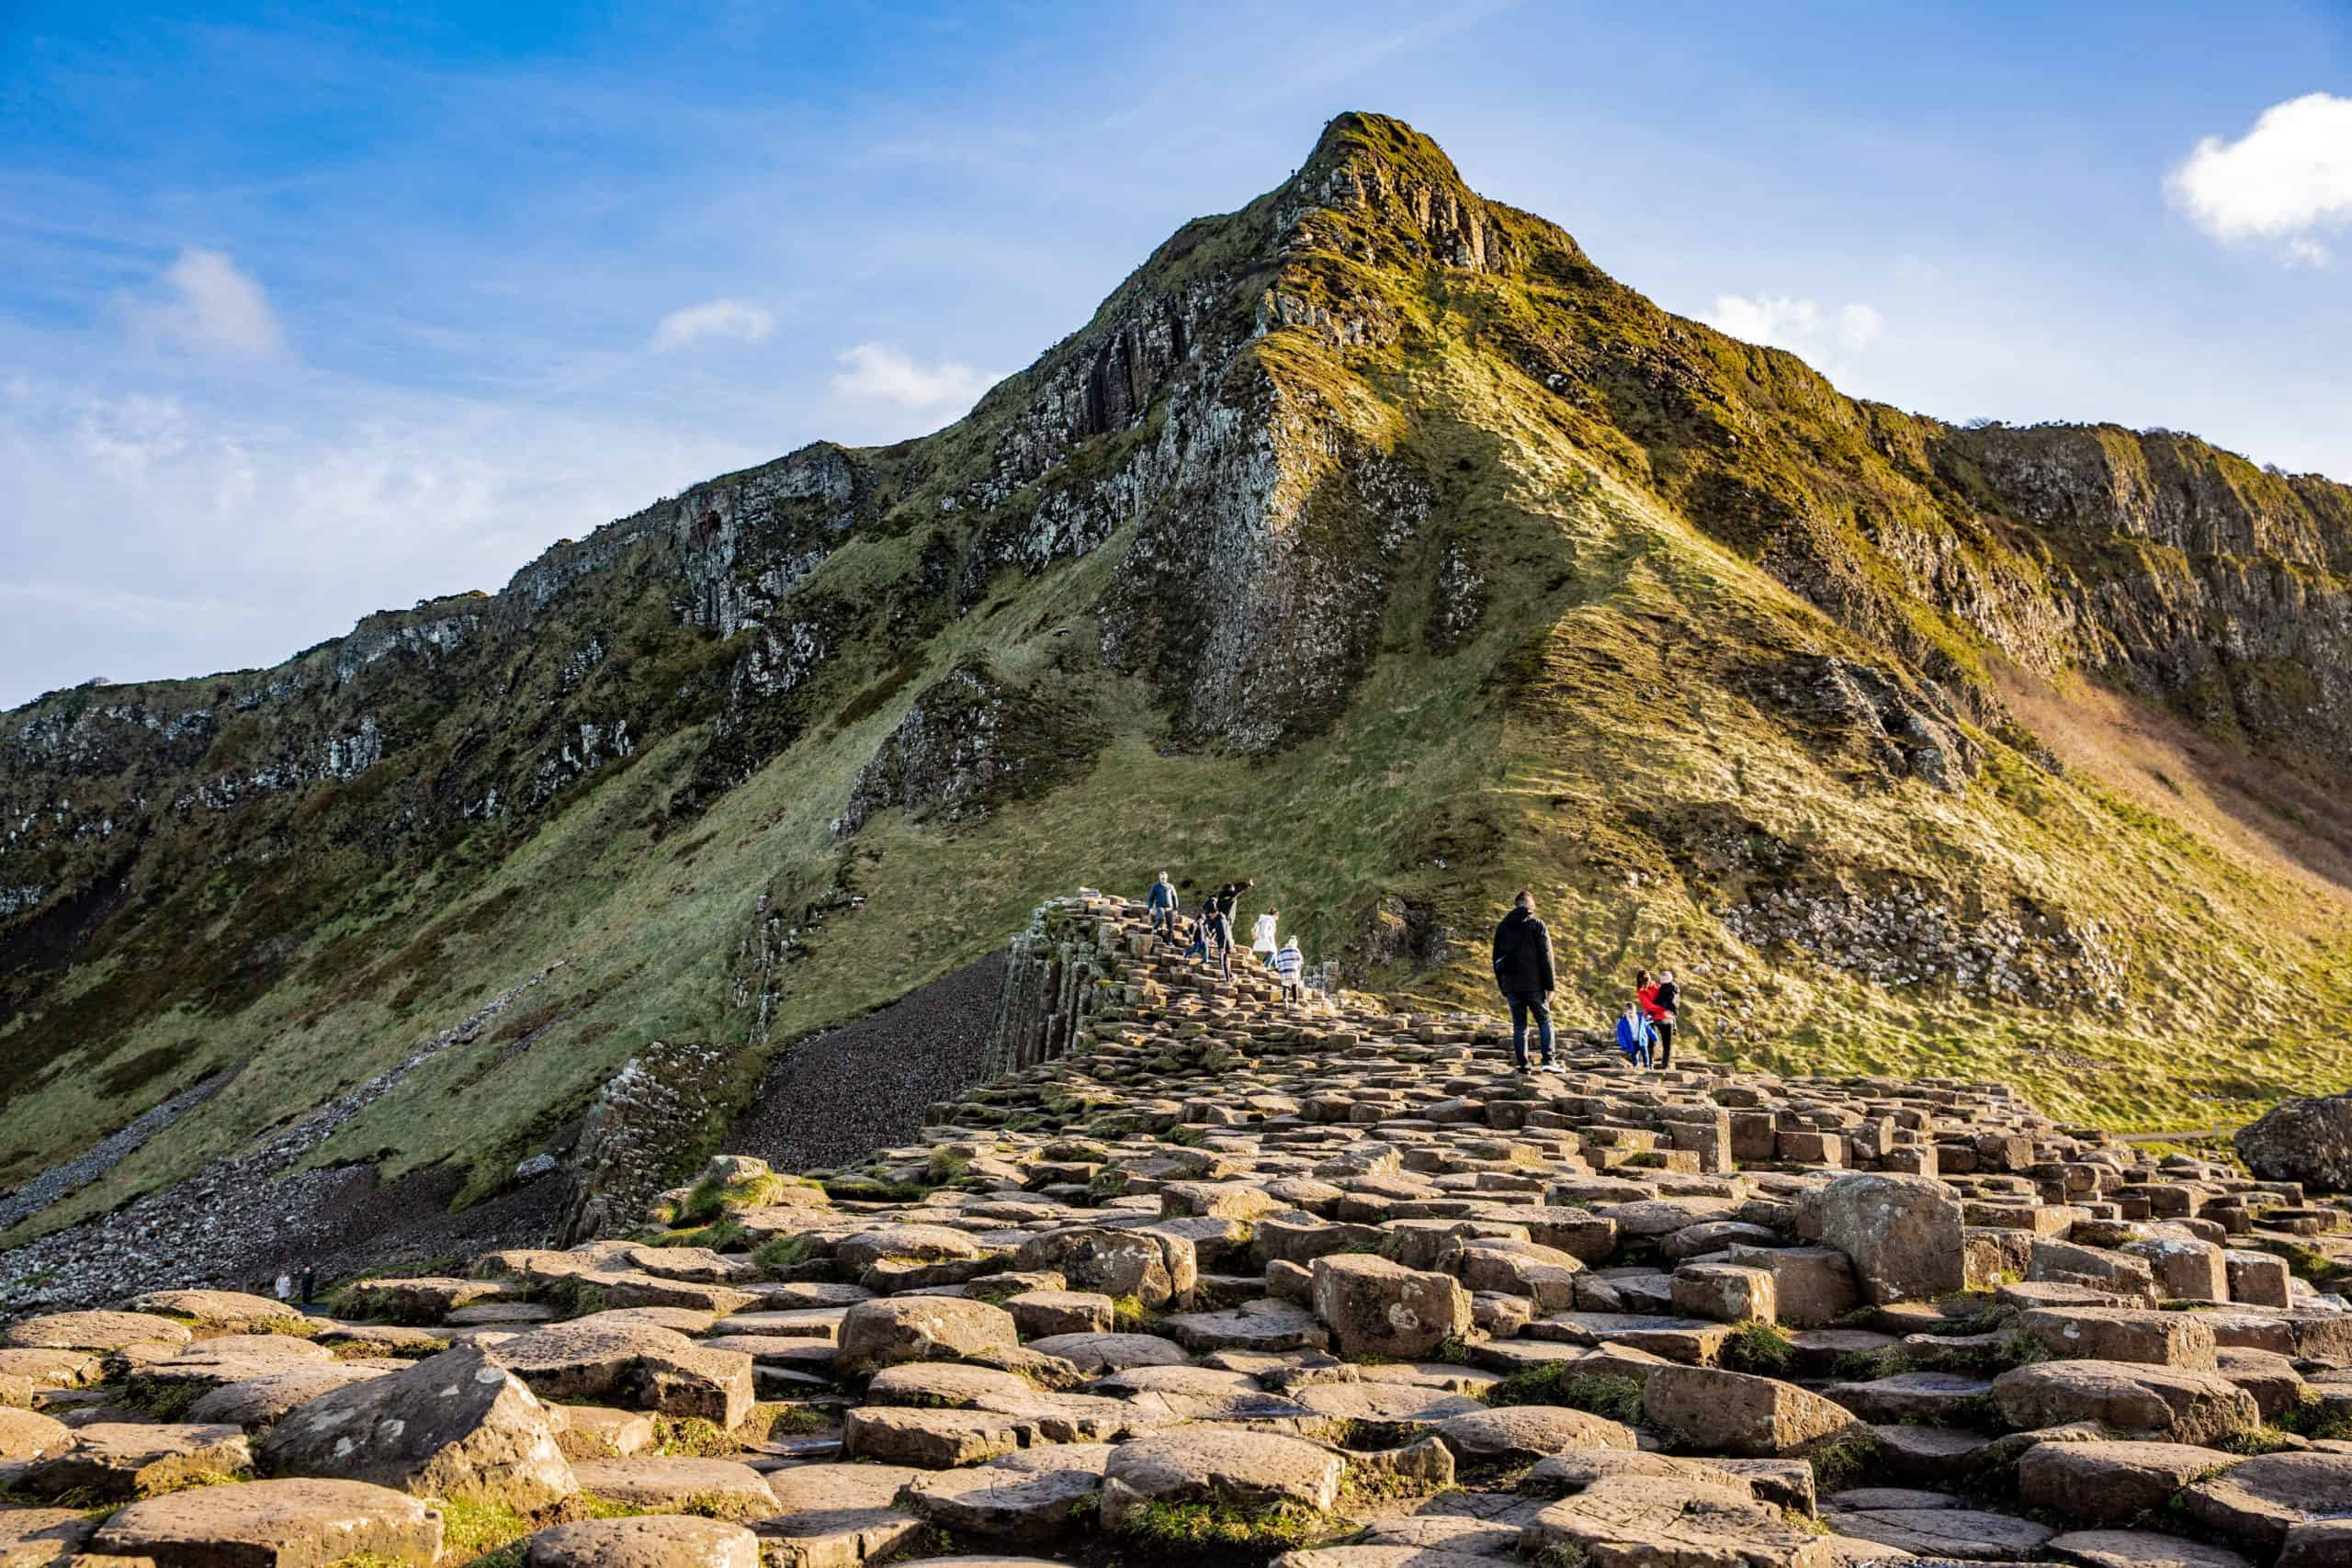 Visiting the Giant's Causeway? There are a lot of articles out there- but this one answers all the questions you'll have when planning your holiday to Northern Ireland! #ireland #travellingireland #northernireland #giantscauseway